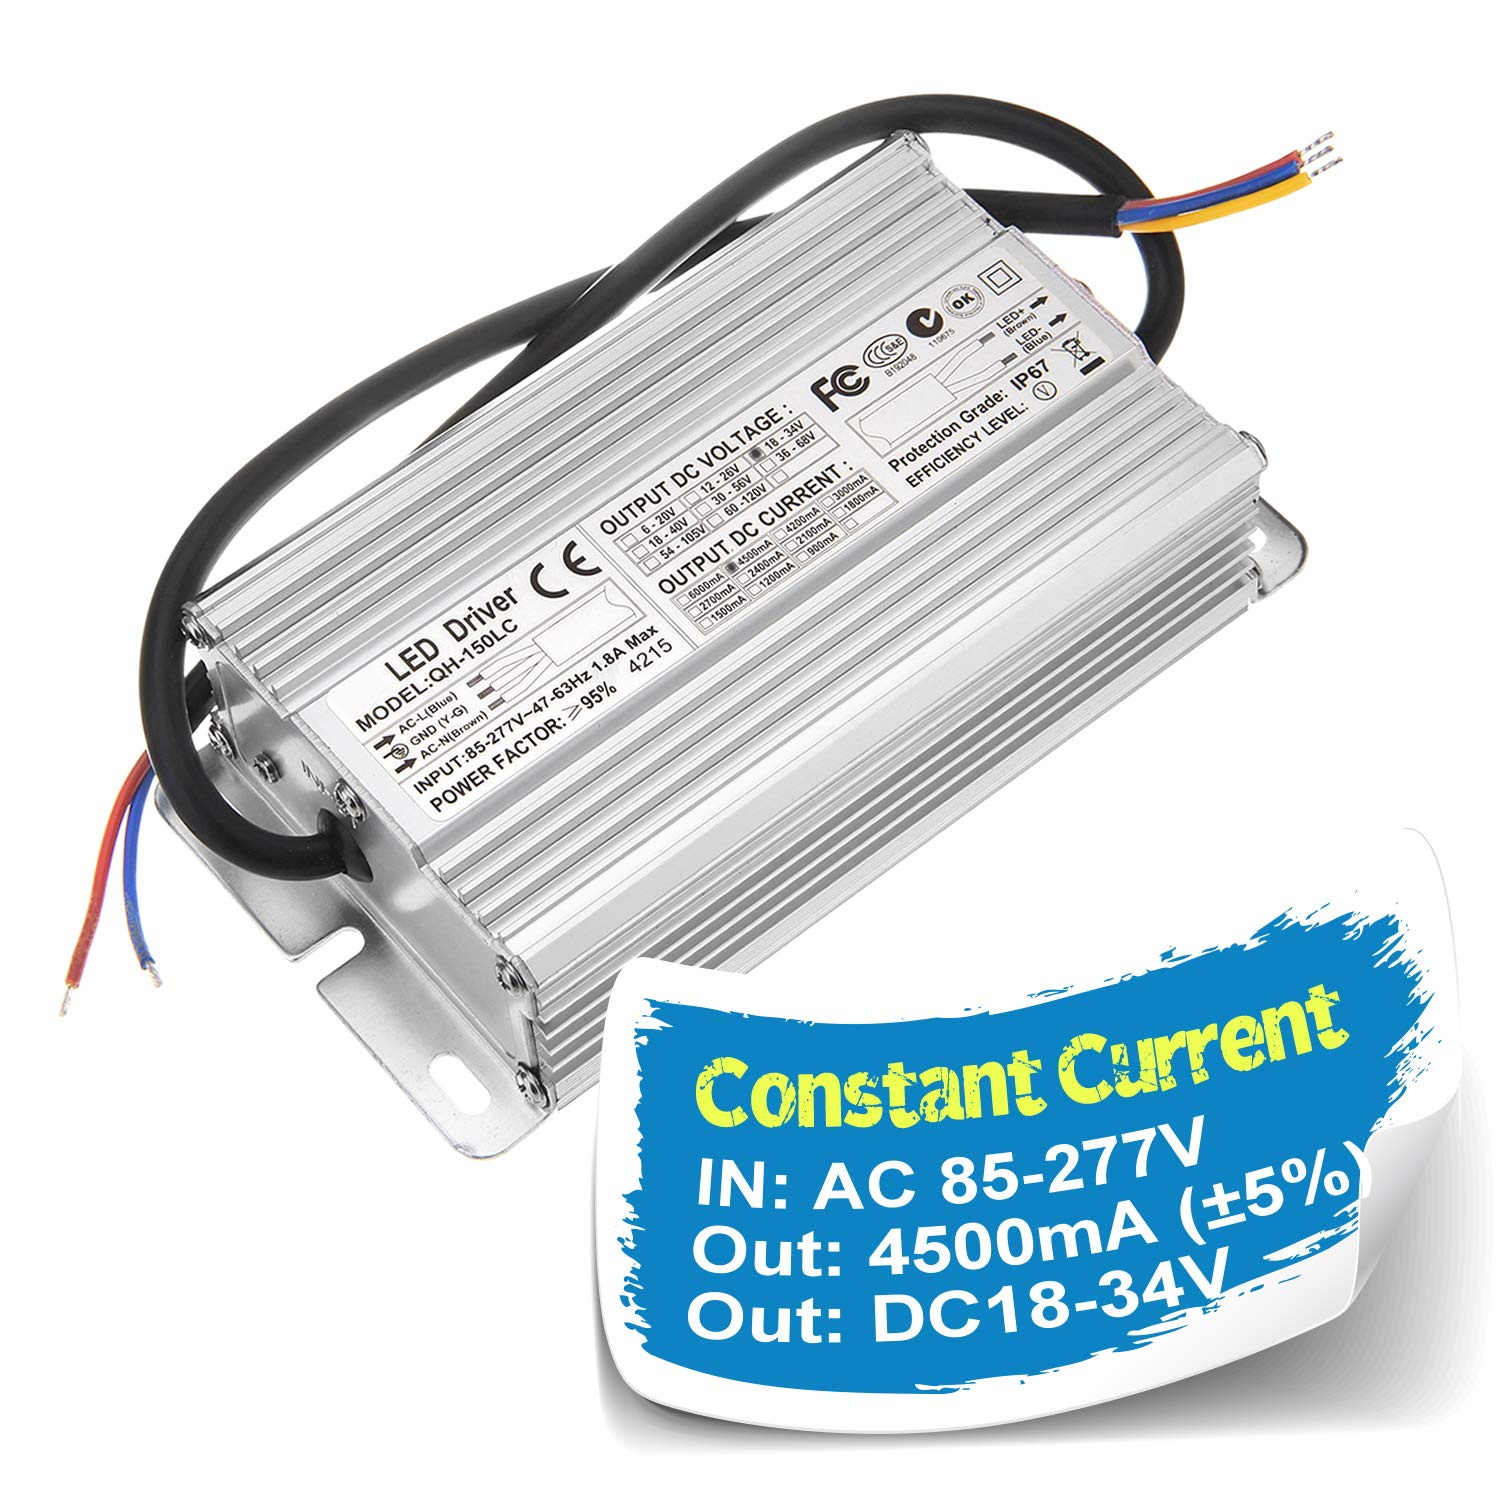 Chanzon LED Driver 4500mA (Constant Current Output) 18V-34V (Input 100-240V AC-DC) (6-10) x15 120W 150W IP67 Waterproof High Power Supply 4500 mA Lighting Transformer for 150 W COB Chips (Aluminium)